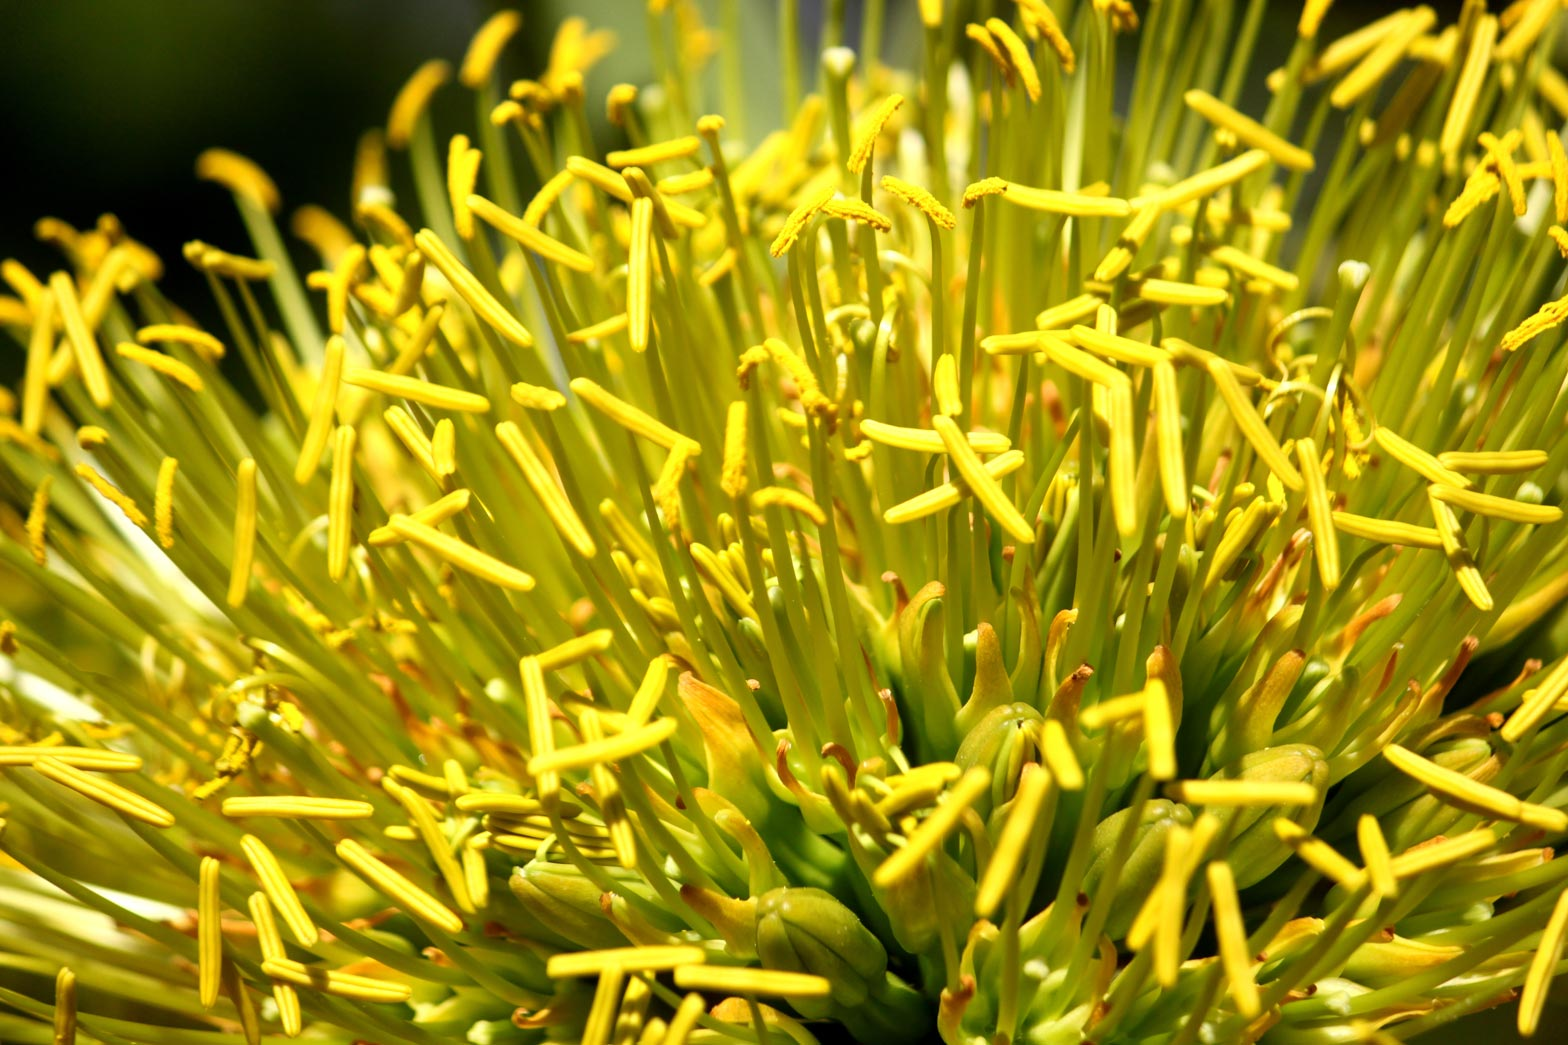 A close-up of the yellow flowers of the Smooth Agave.